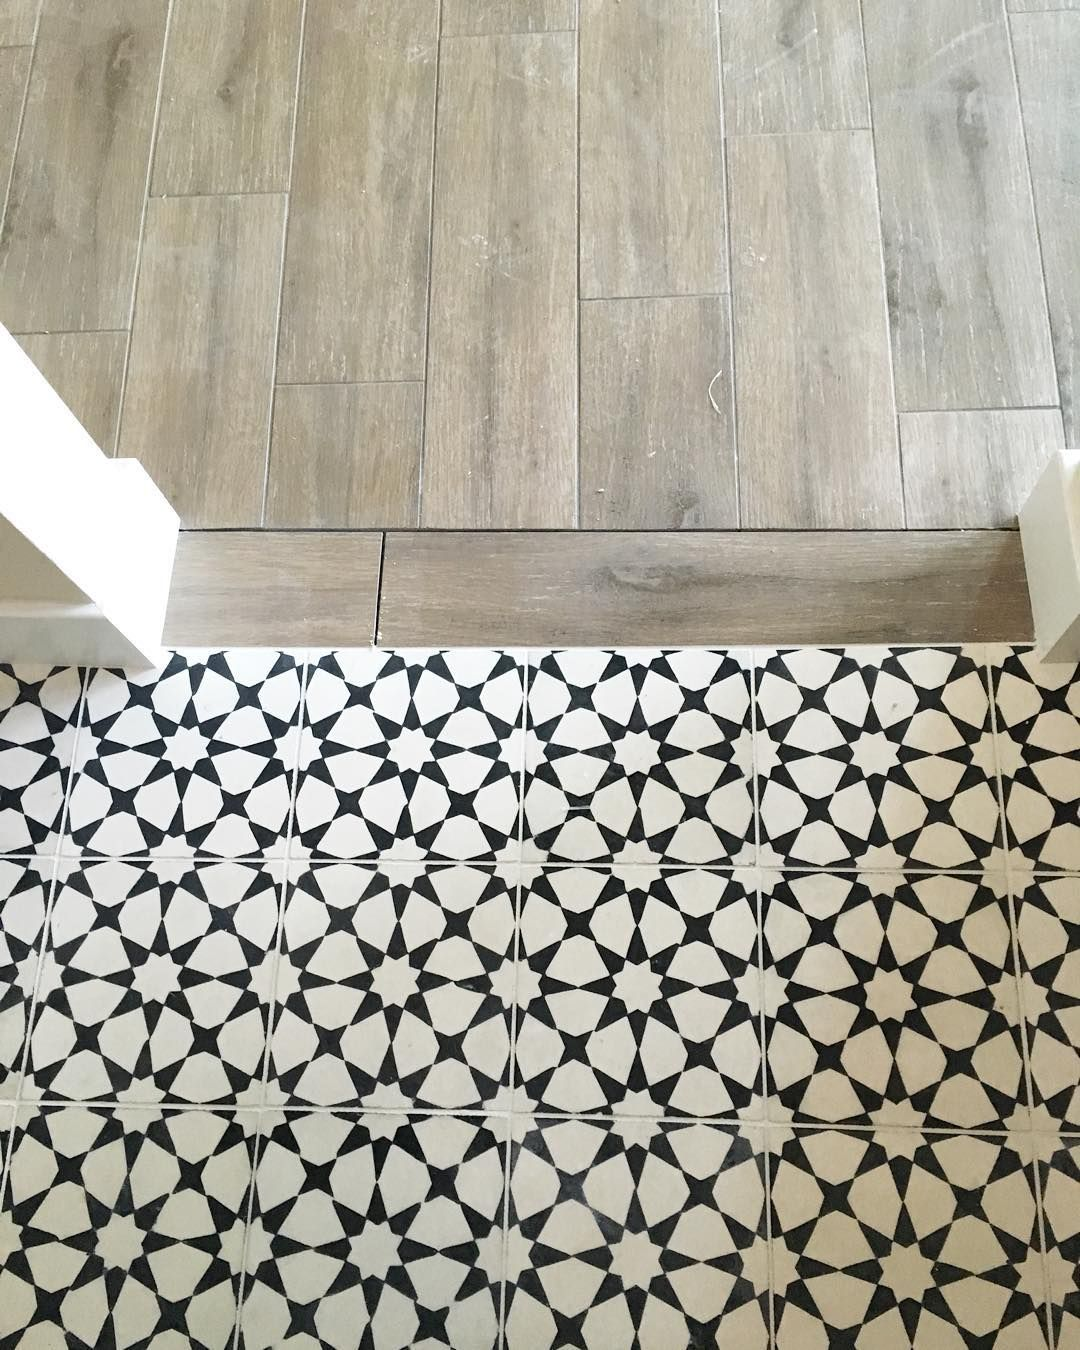 Vanessa Matsalla Wood To Cement Tile Transition Bathroom